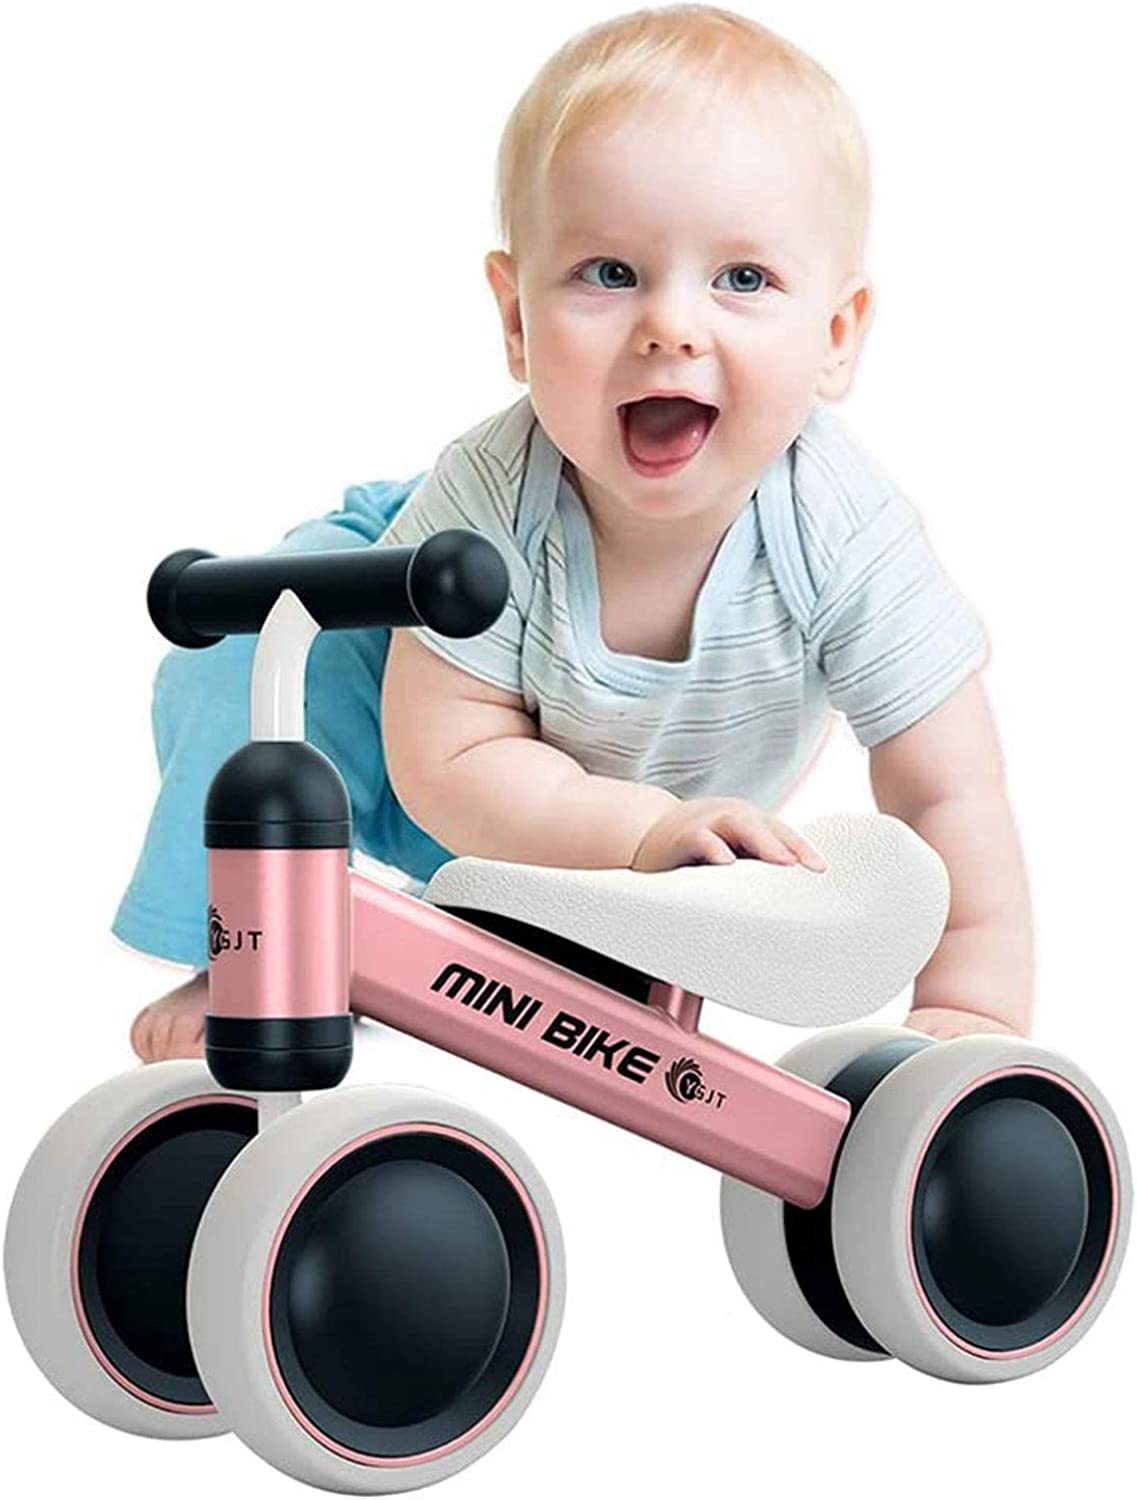 Suitable for 1-2 Years Old AYNEFY Balance Training Bike Mini Bike Scooter Walker Scooter Baby Walker Ride on Trike for Birthday Gift